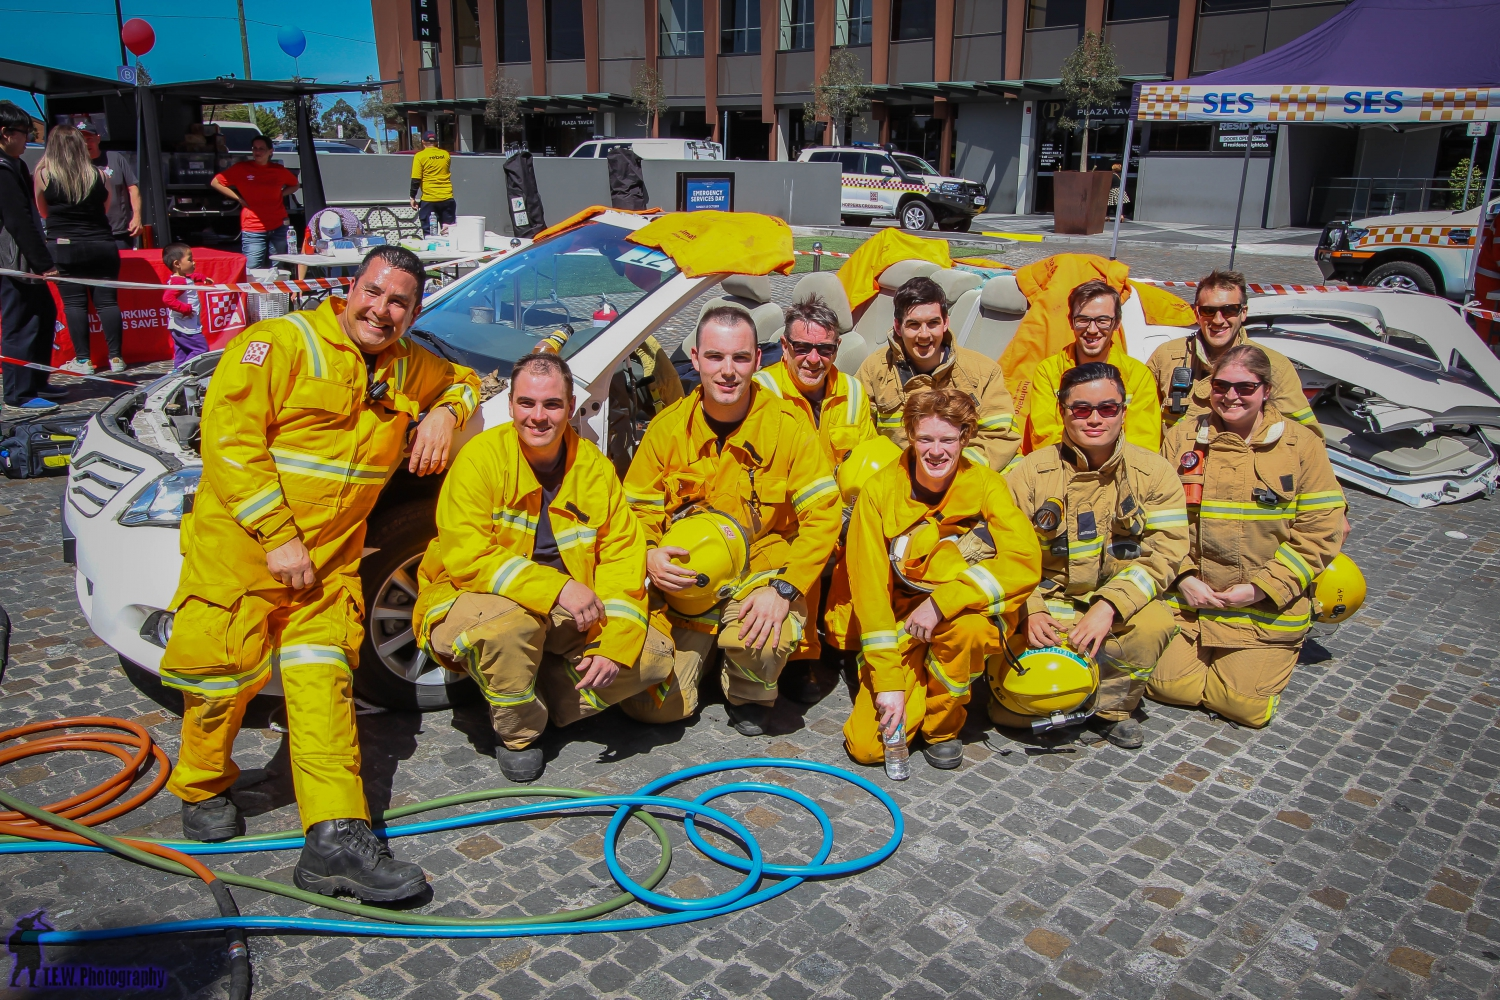 Pacific Epping Shopping Centre is hosting an Emergency Services Day!